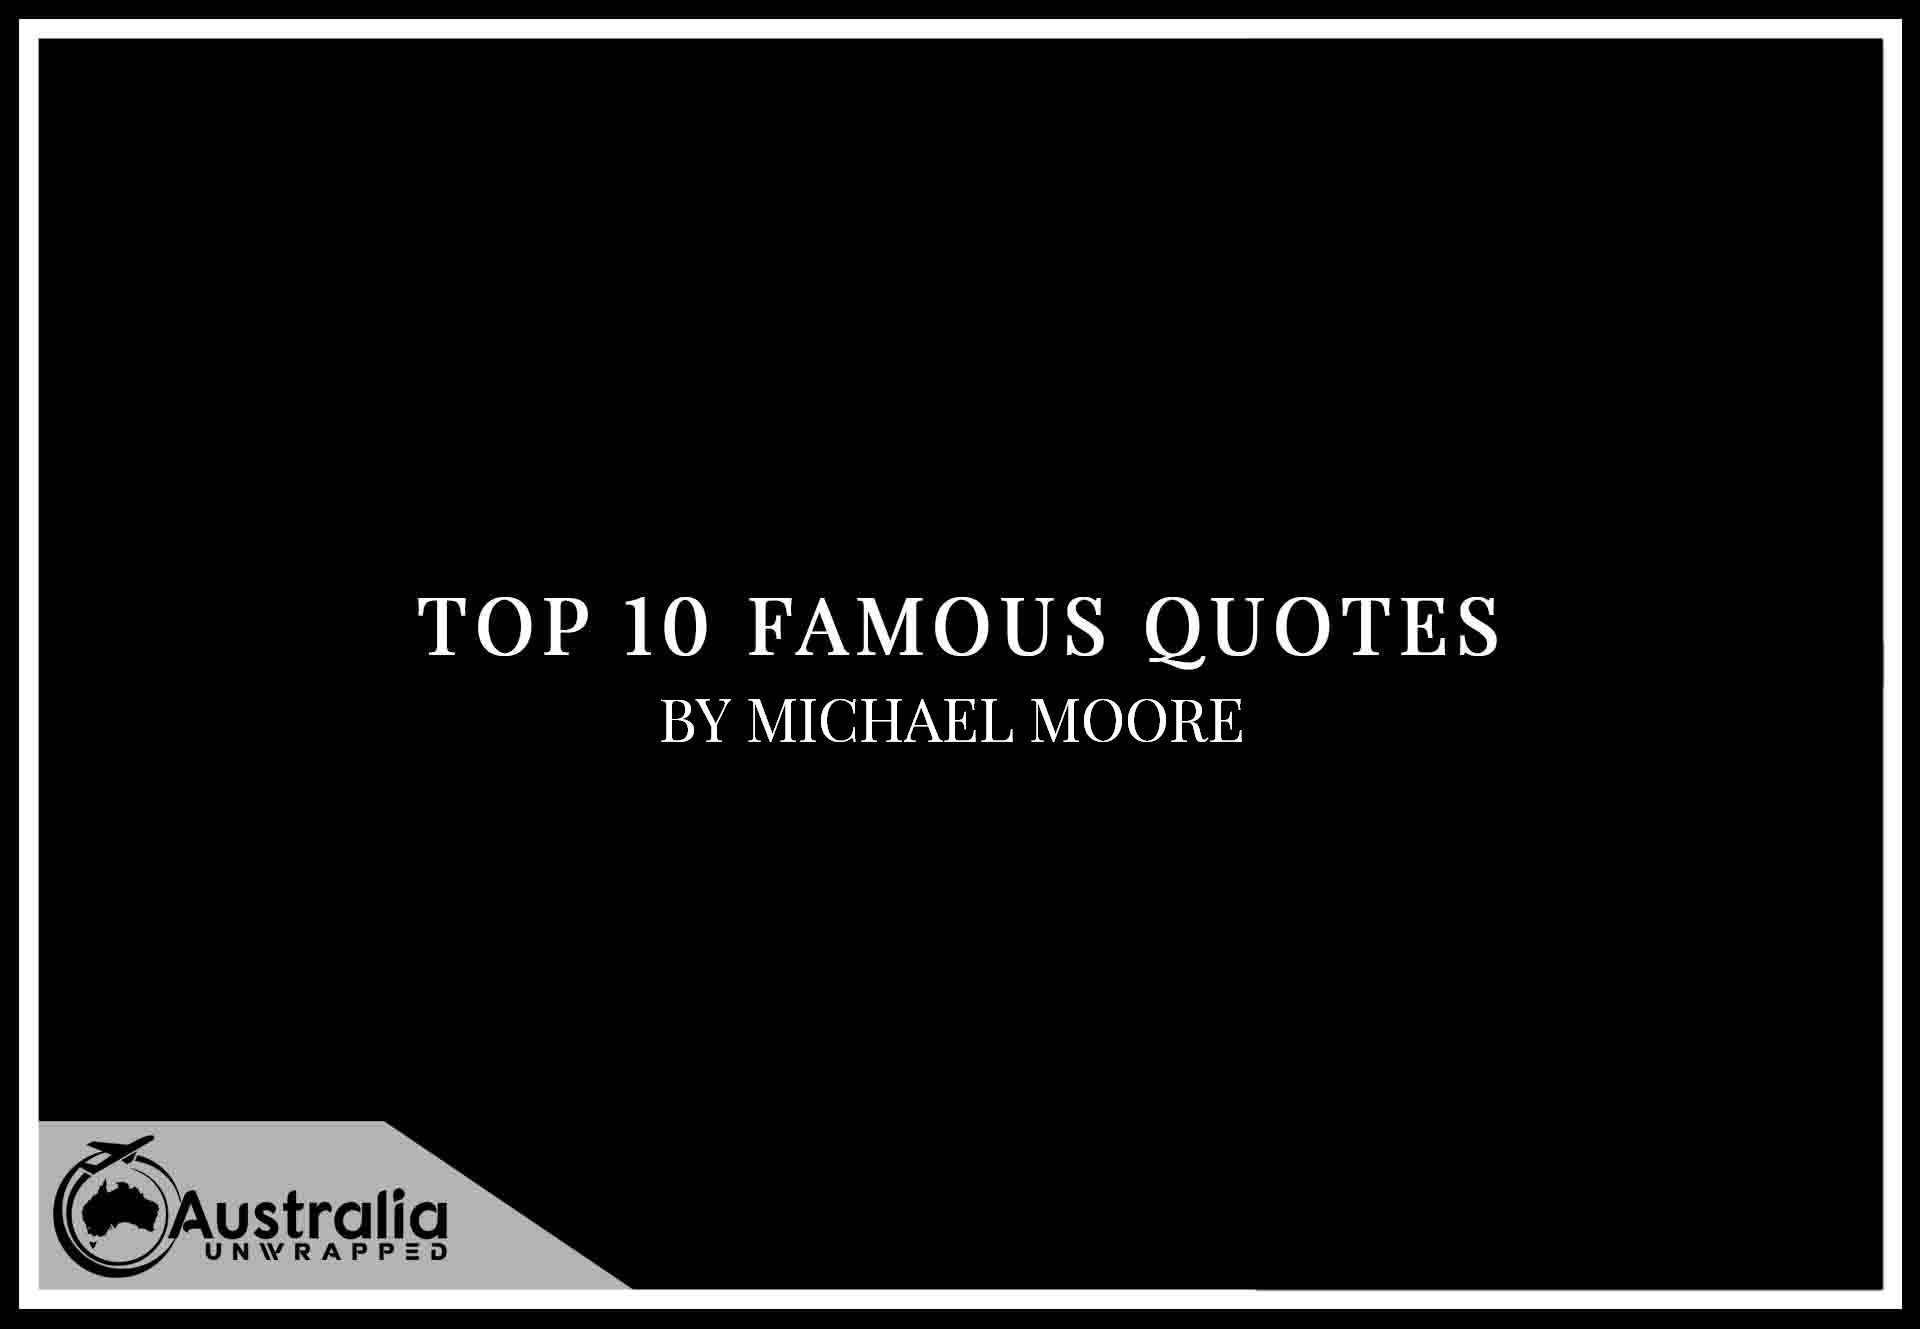 Top 10 Famous Quotes by Author Michael Moore